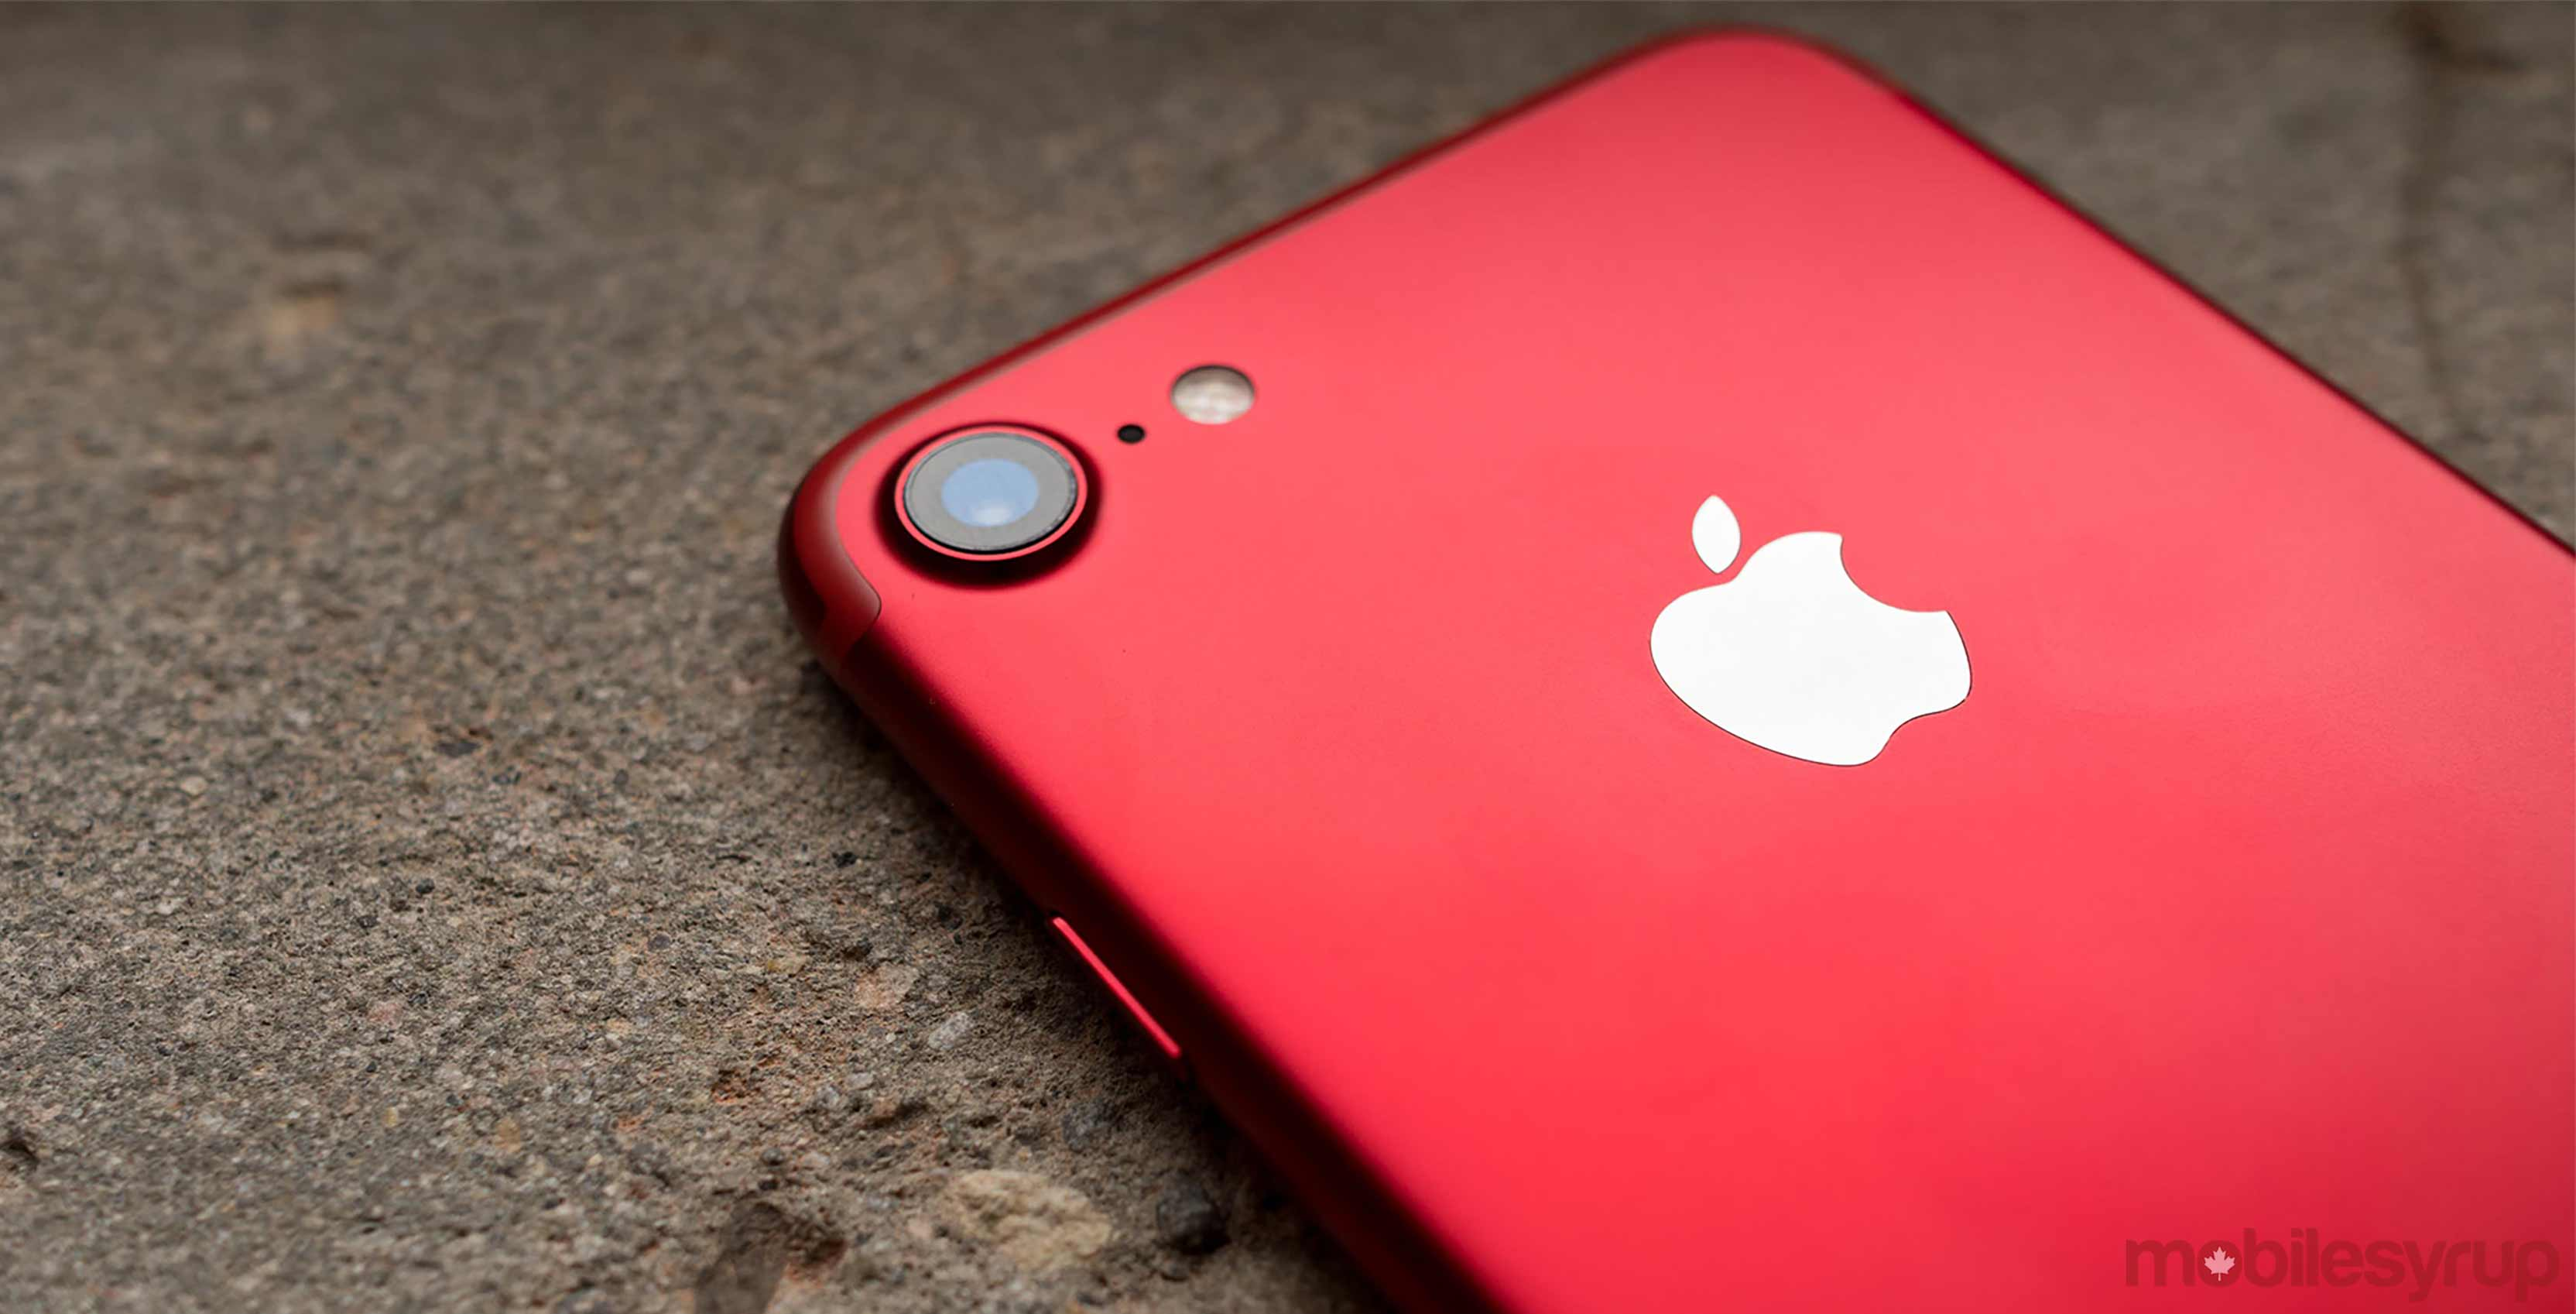 product red iPhone iOS Update